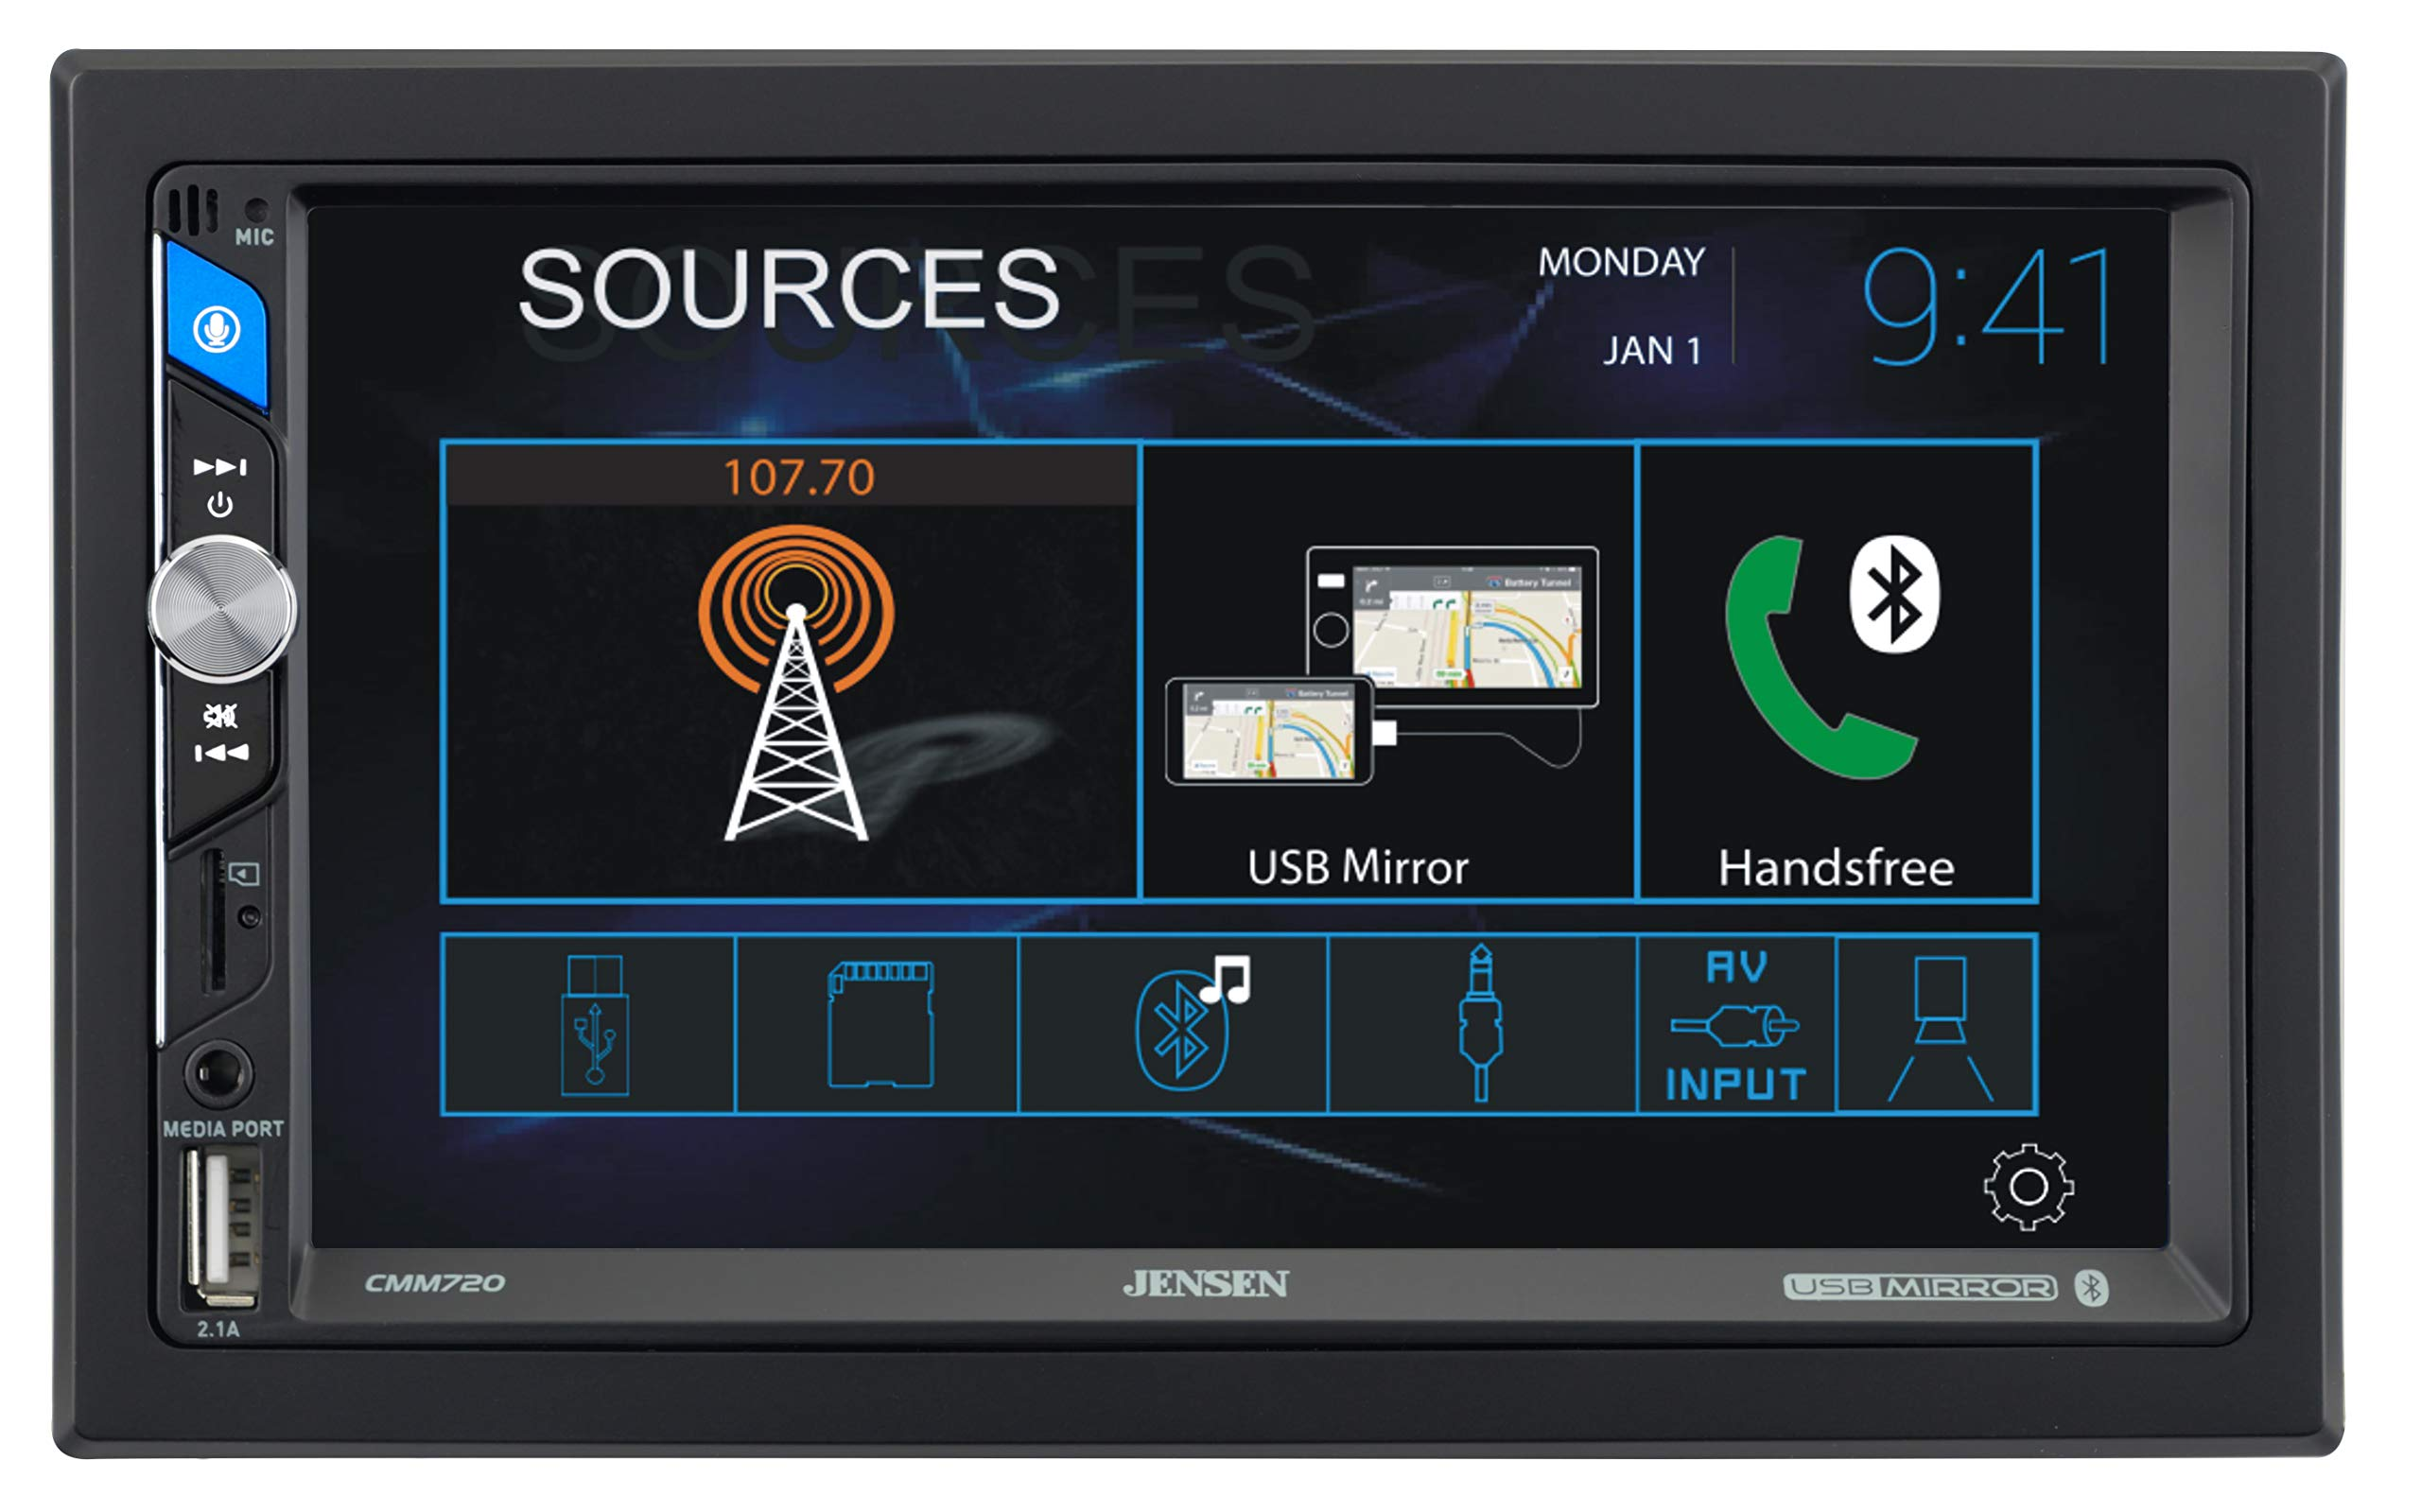 Jensen CMM720 7 inch LED Multimedia Touch Screen Double Din Car Stereo  USB Screen Mirroring USB /& microSD Push to Talk Assistant Front /& Rear Camera Steering Wheel Control Bluetooth